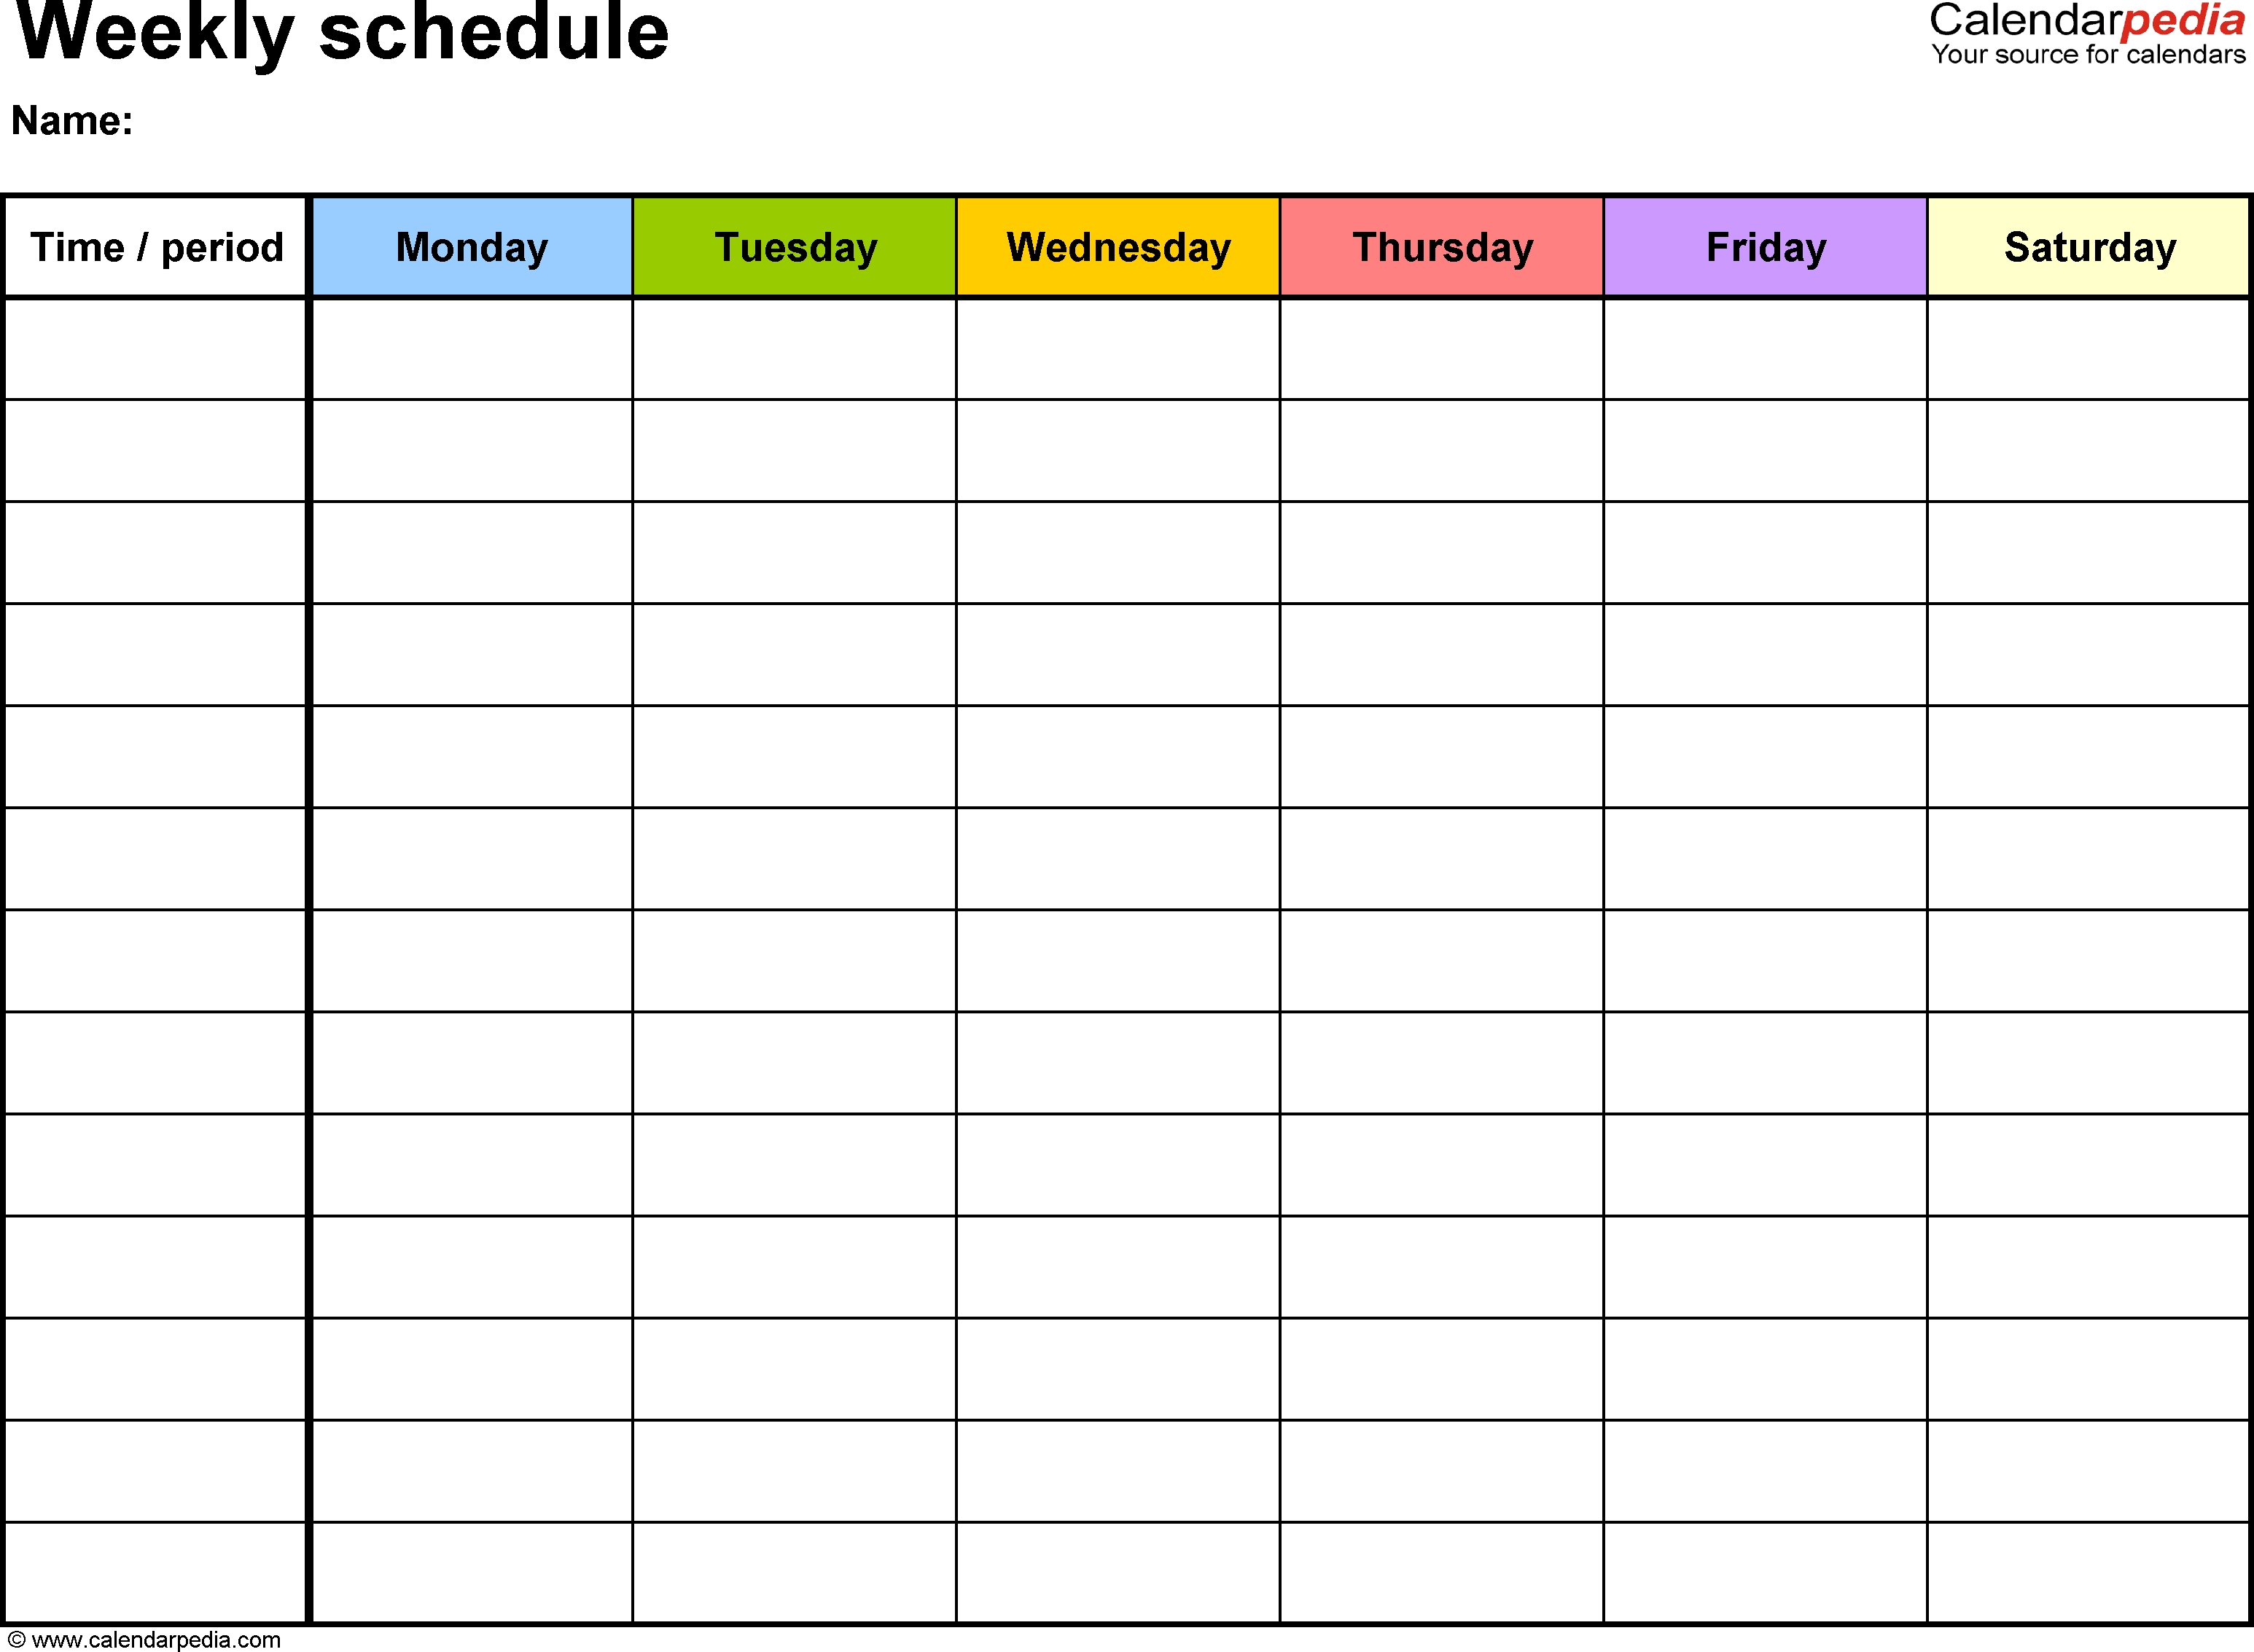 Schedule Templates | Doliquid  Weekly Calandar Template Starting Monday